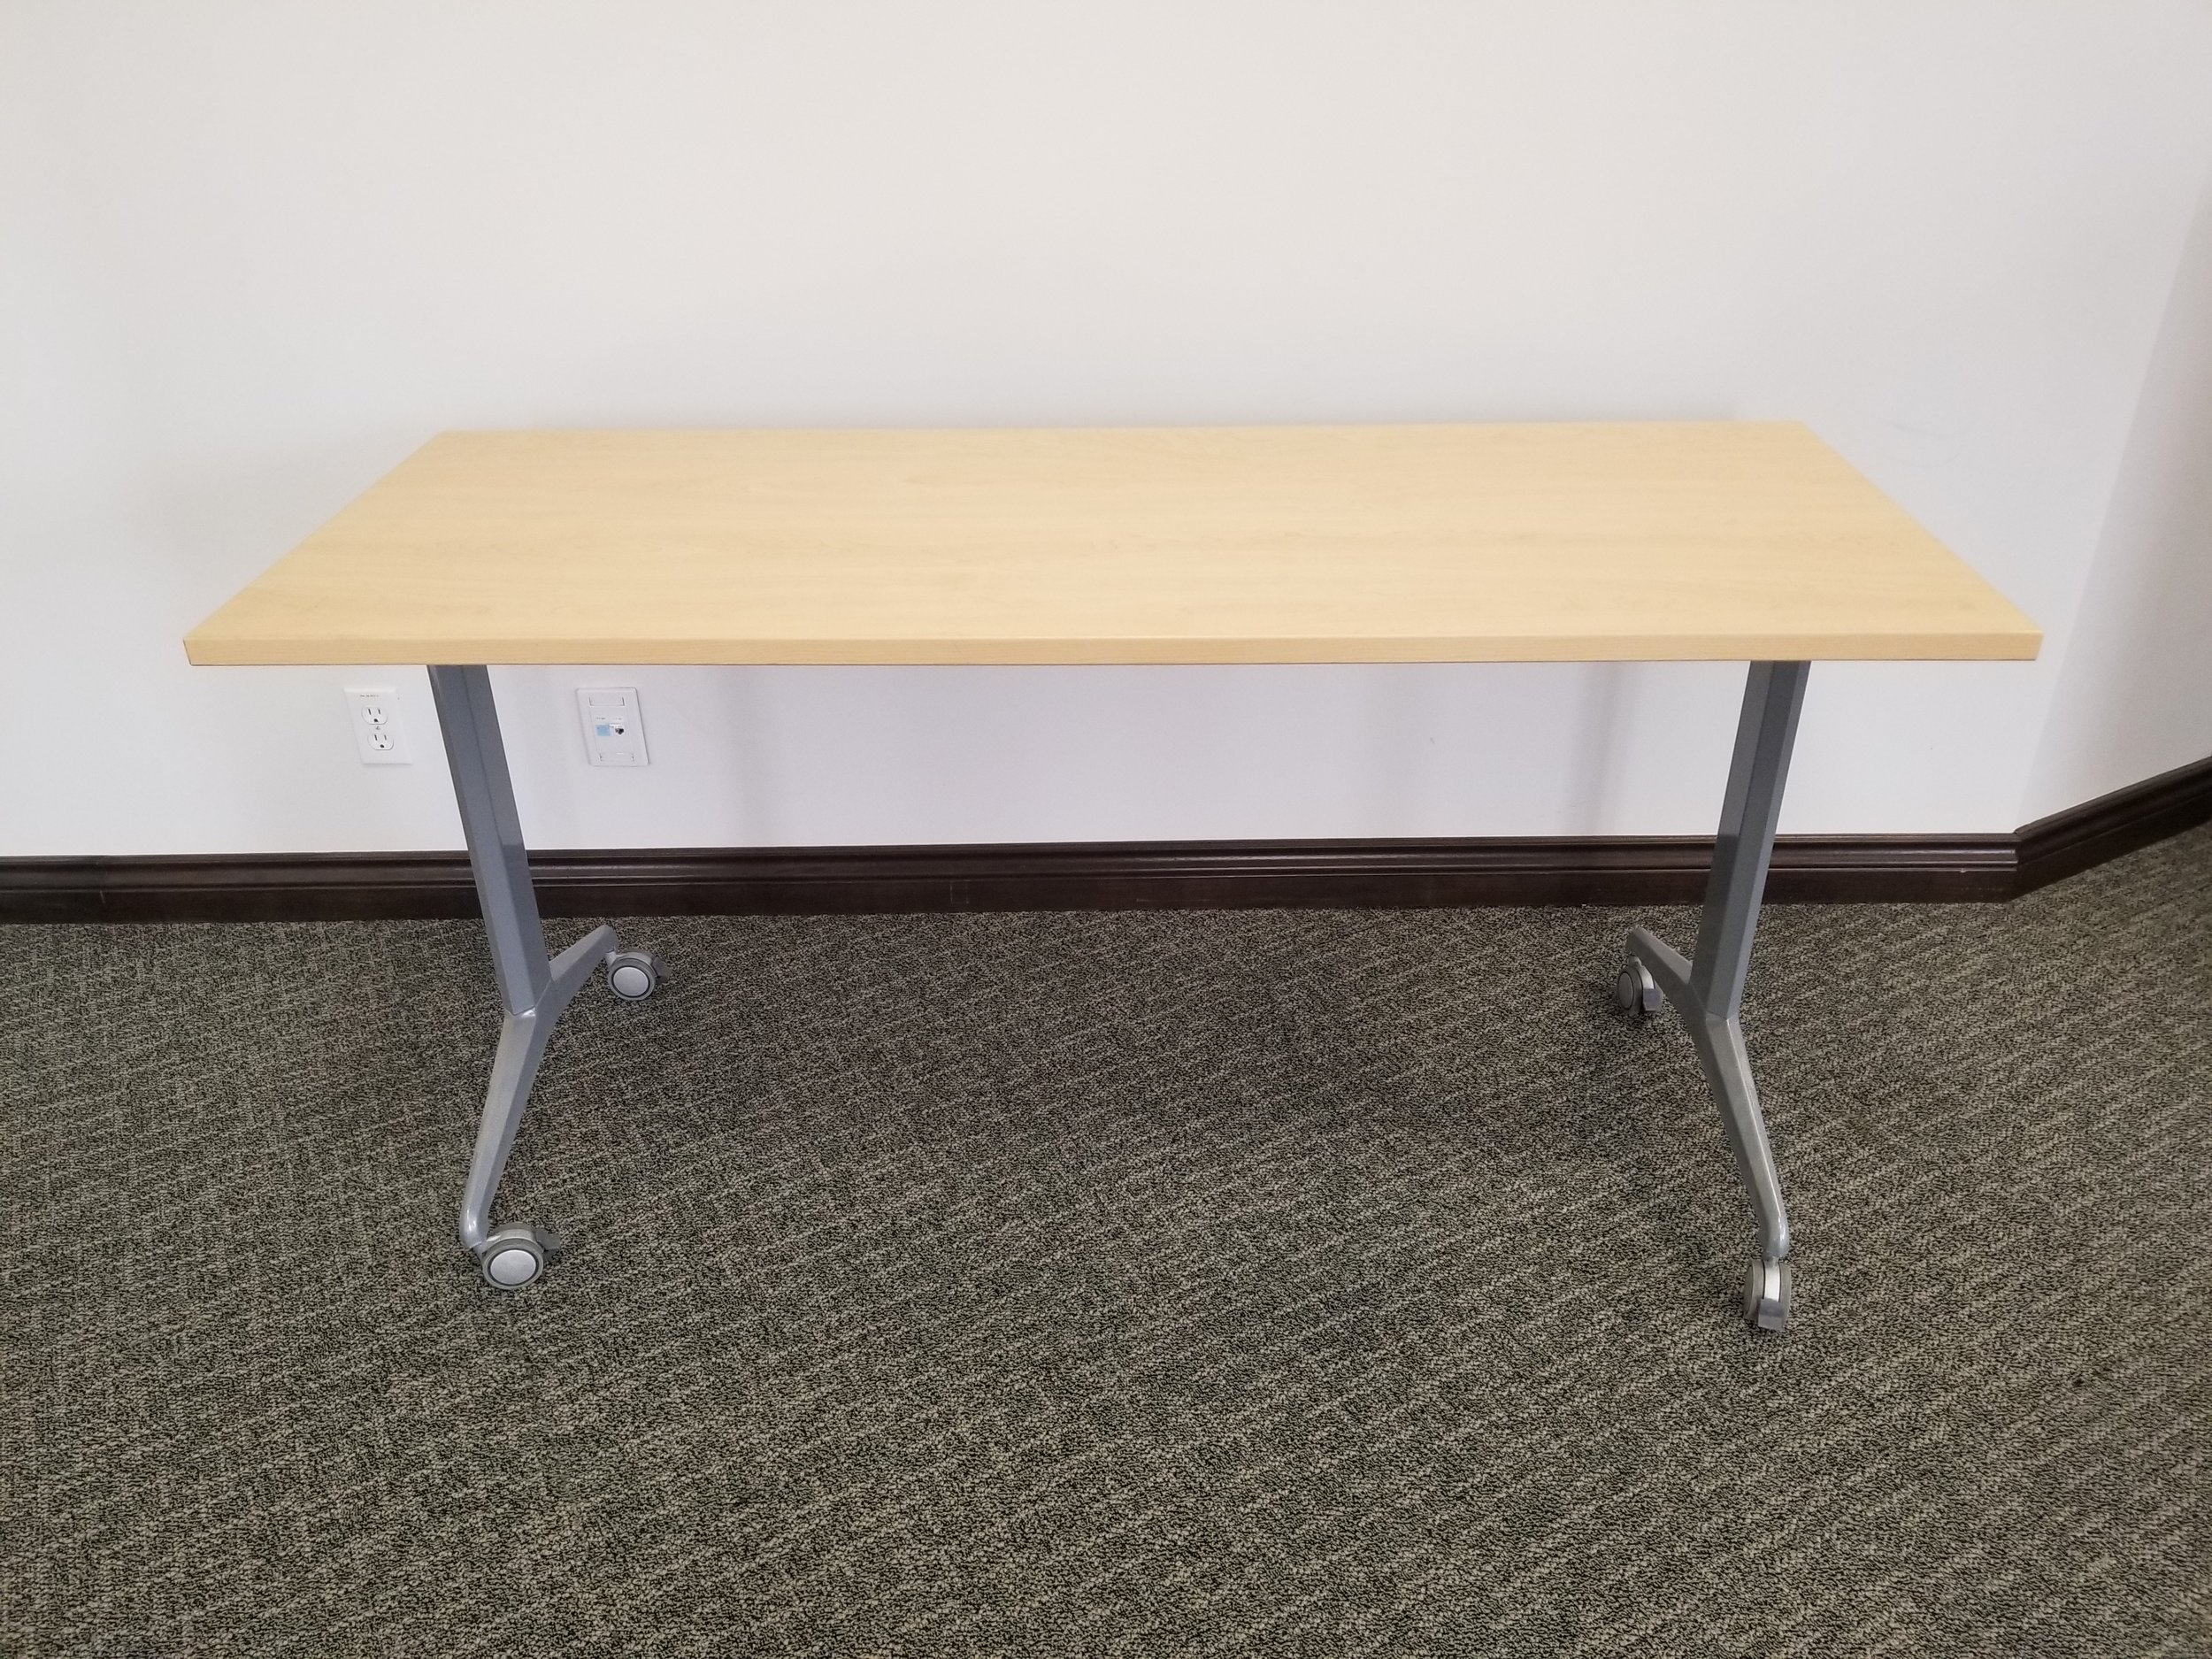 "60"" x 30"" Mobile flip top table - maple finish"